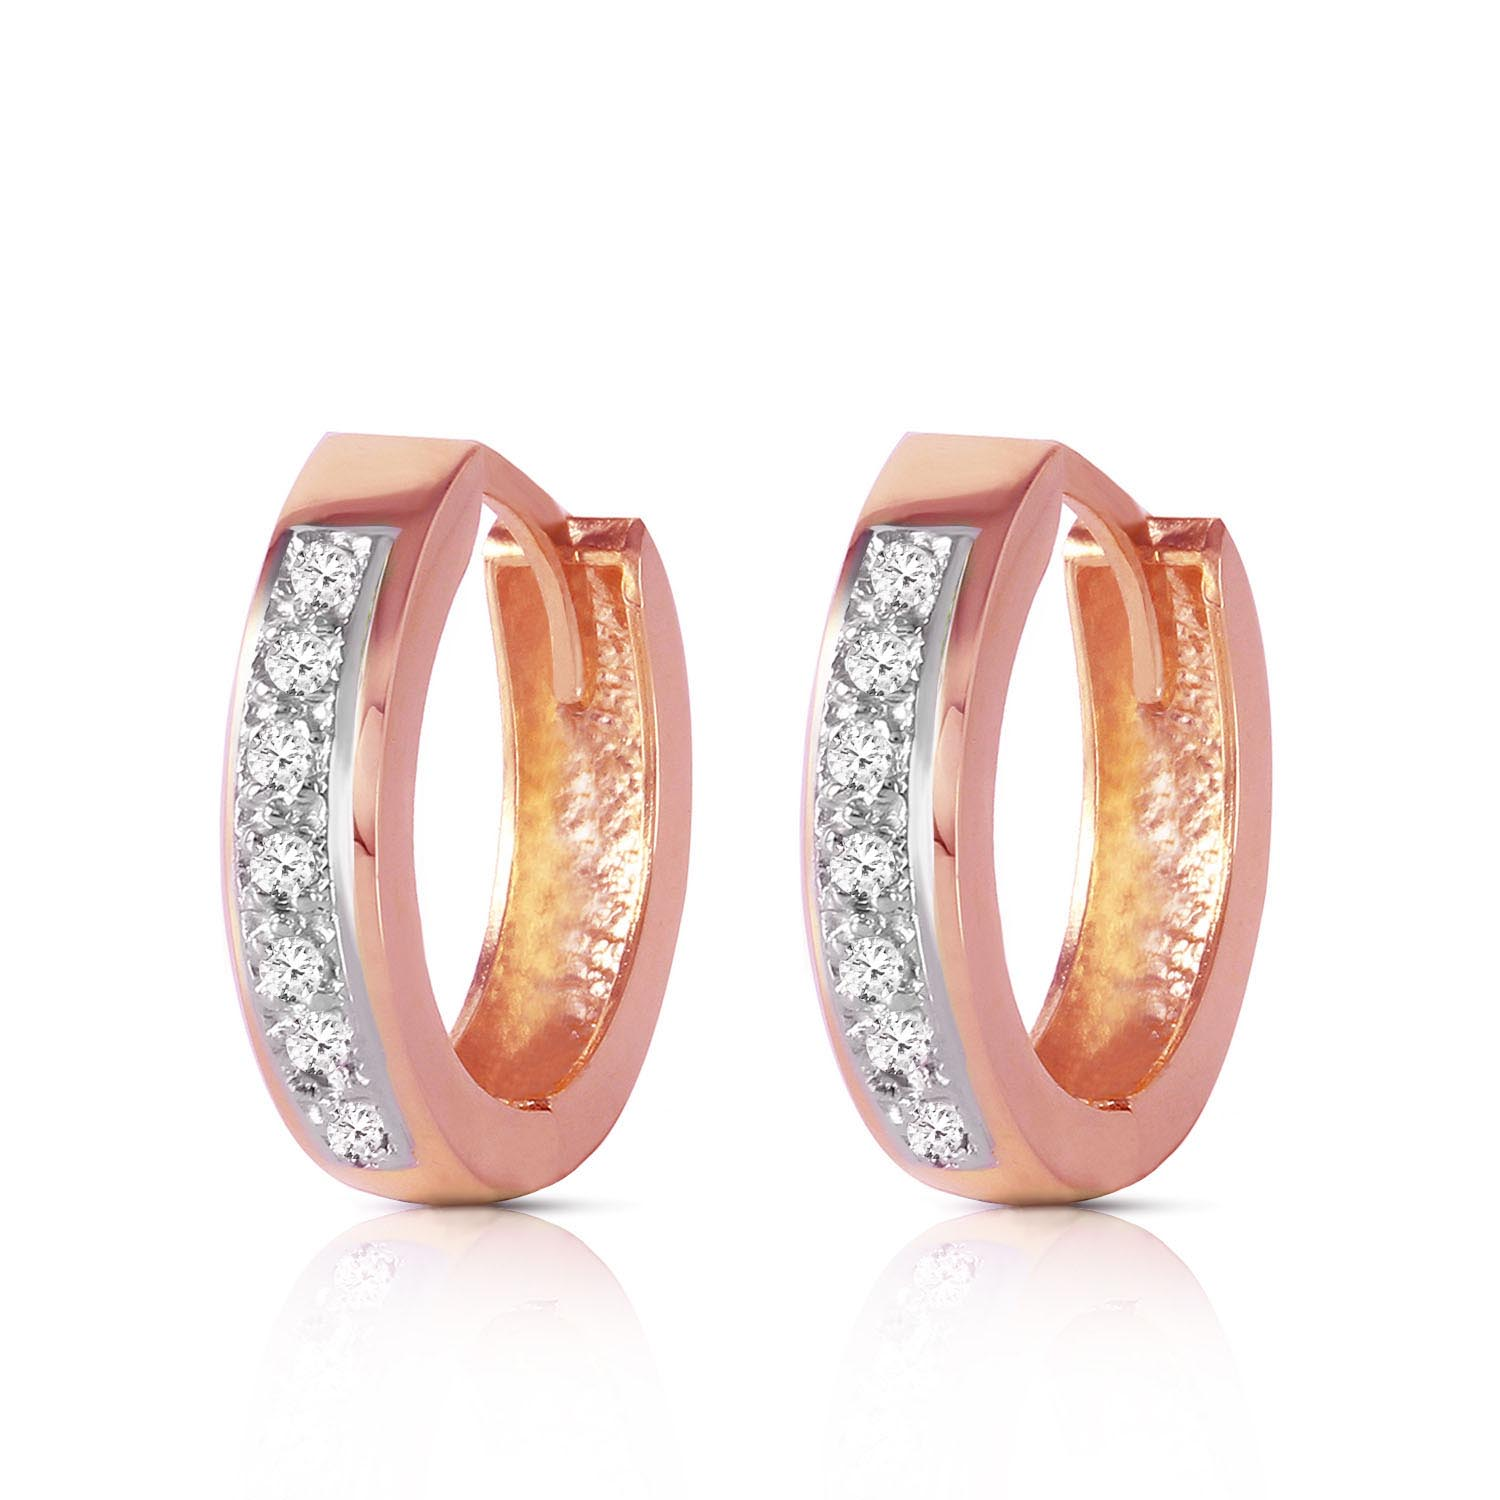 Diamond Huggie Earrings in 14K Rose Gold